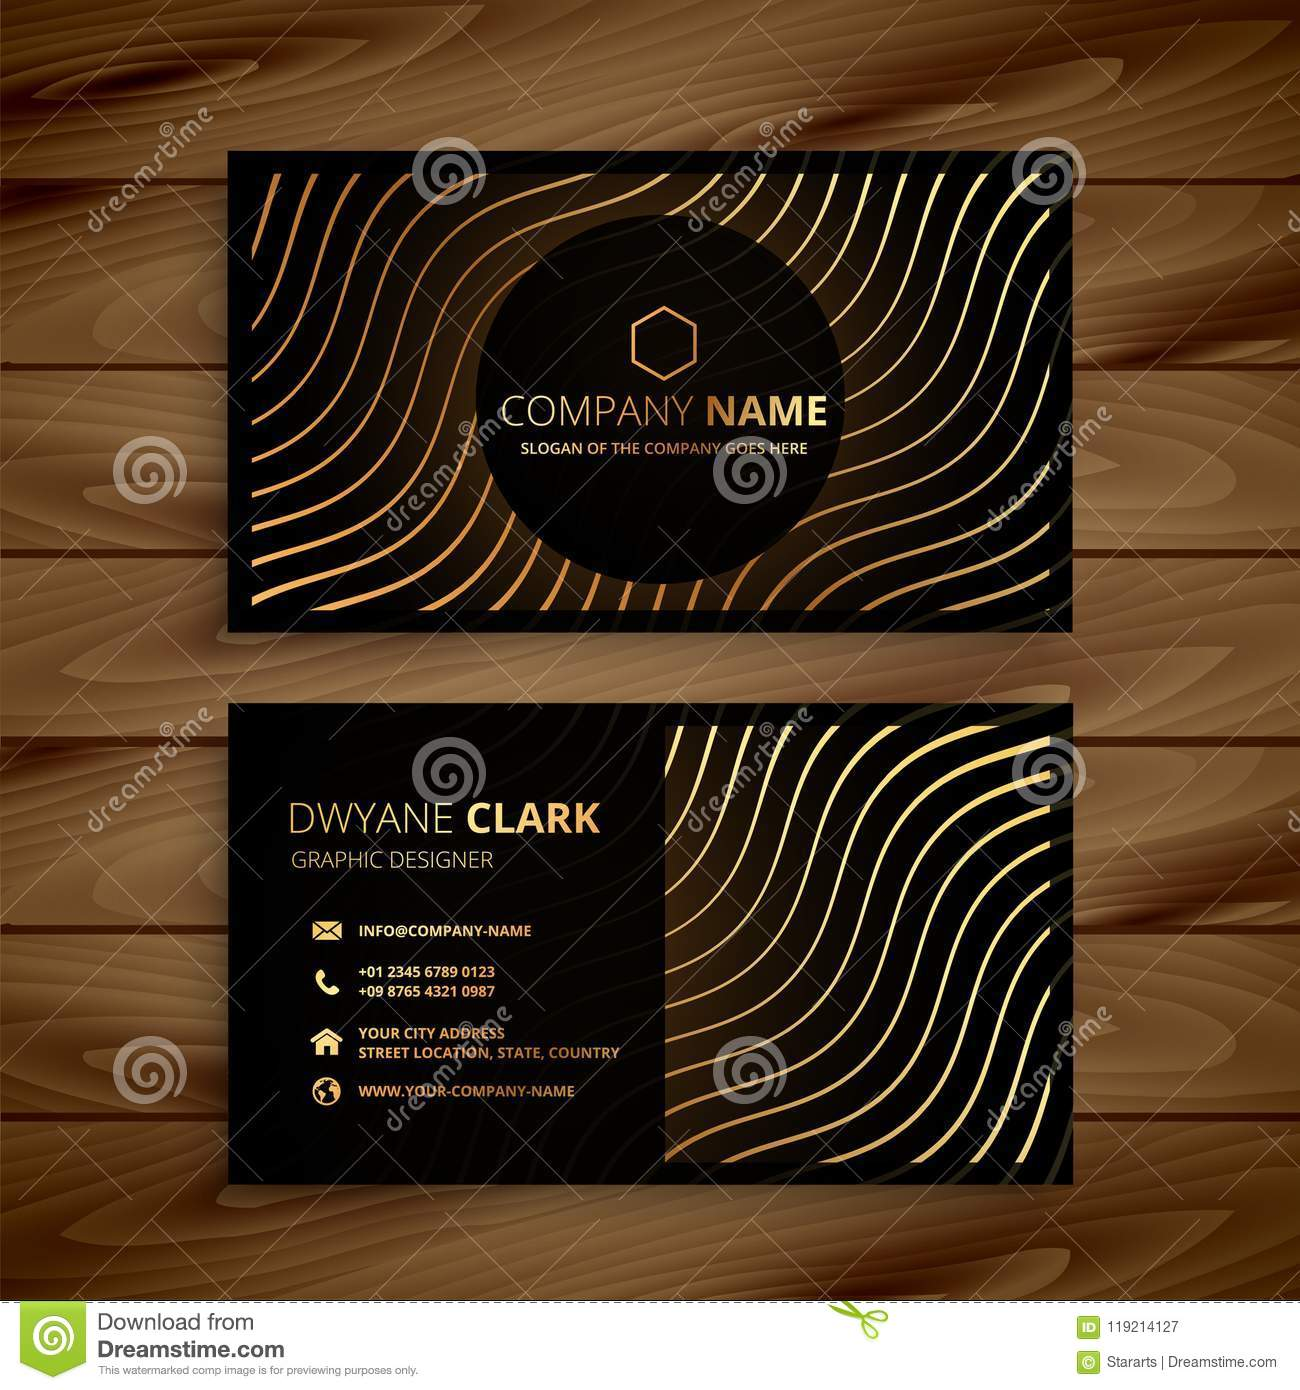 Golden premium business card template stock vector illustration of download golden premium business card template stock vector illustration of layout presentation 119214127 wajeb Gallery